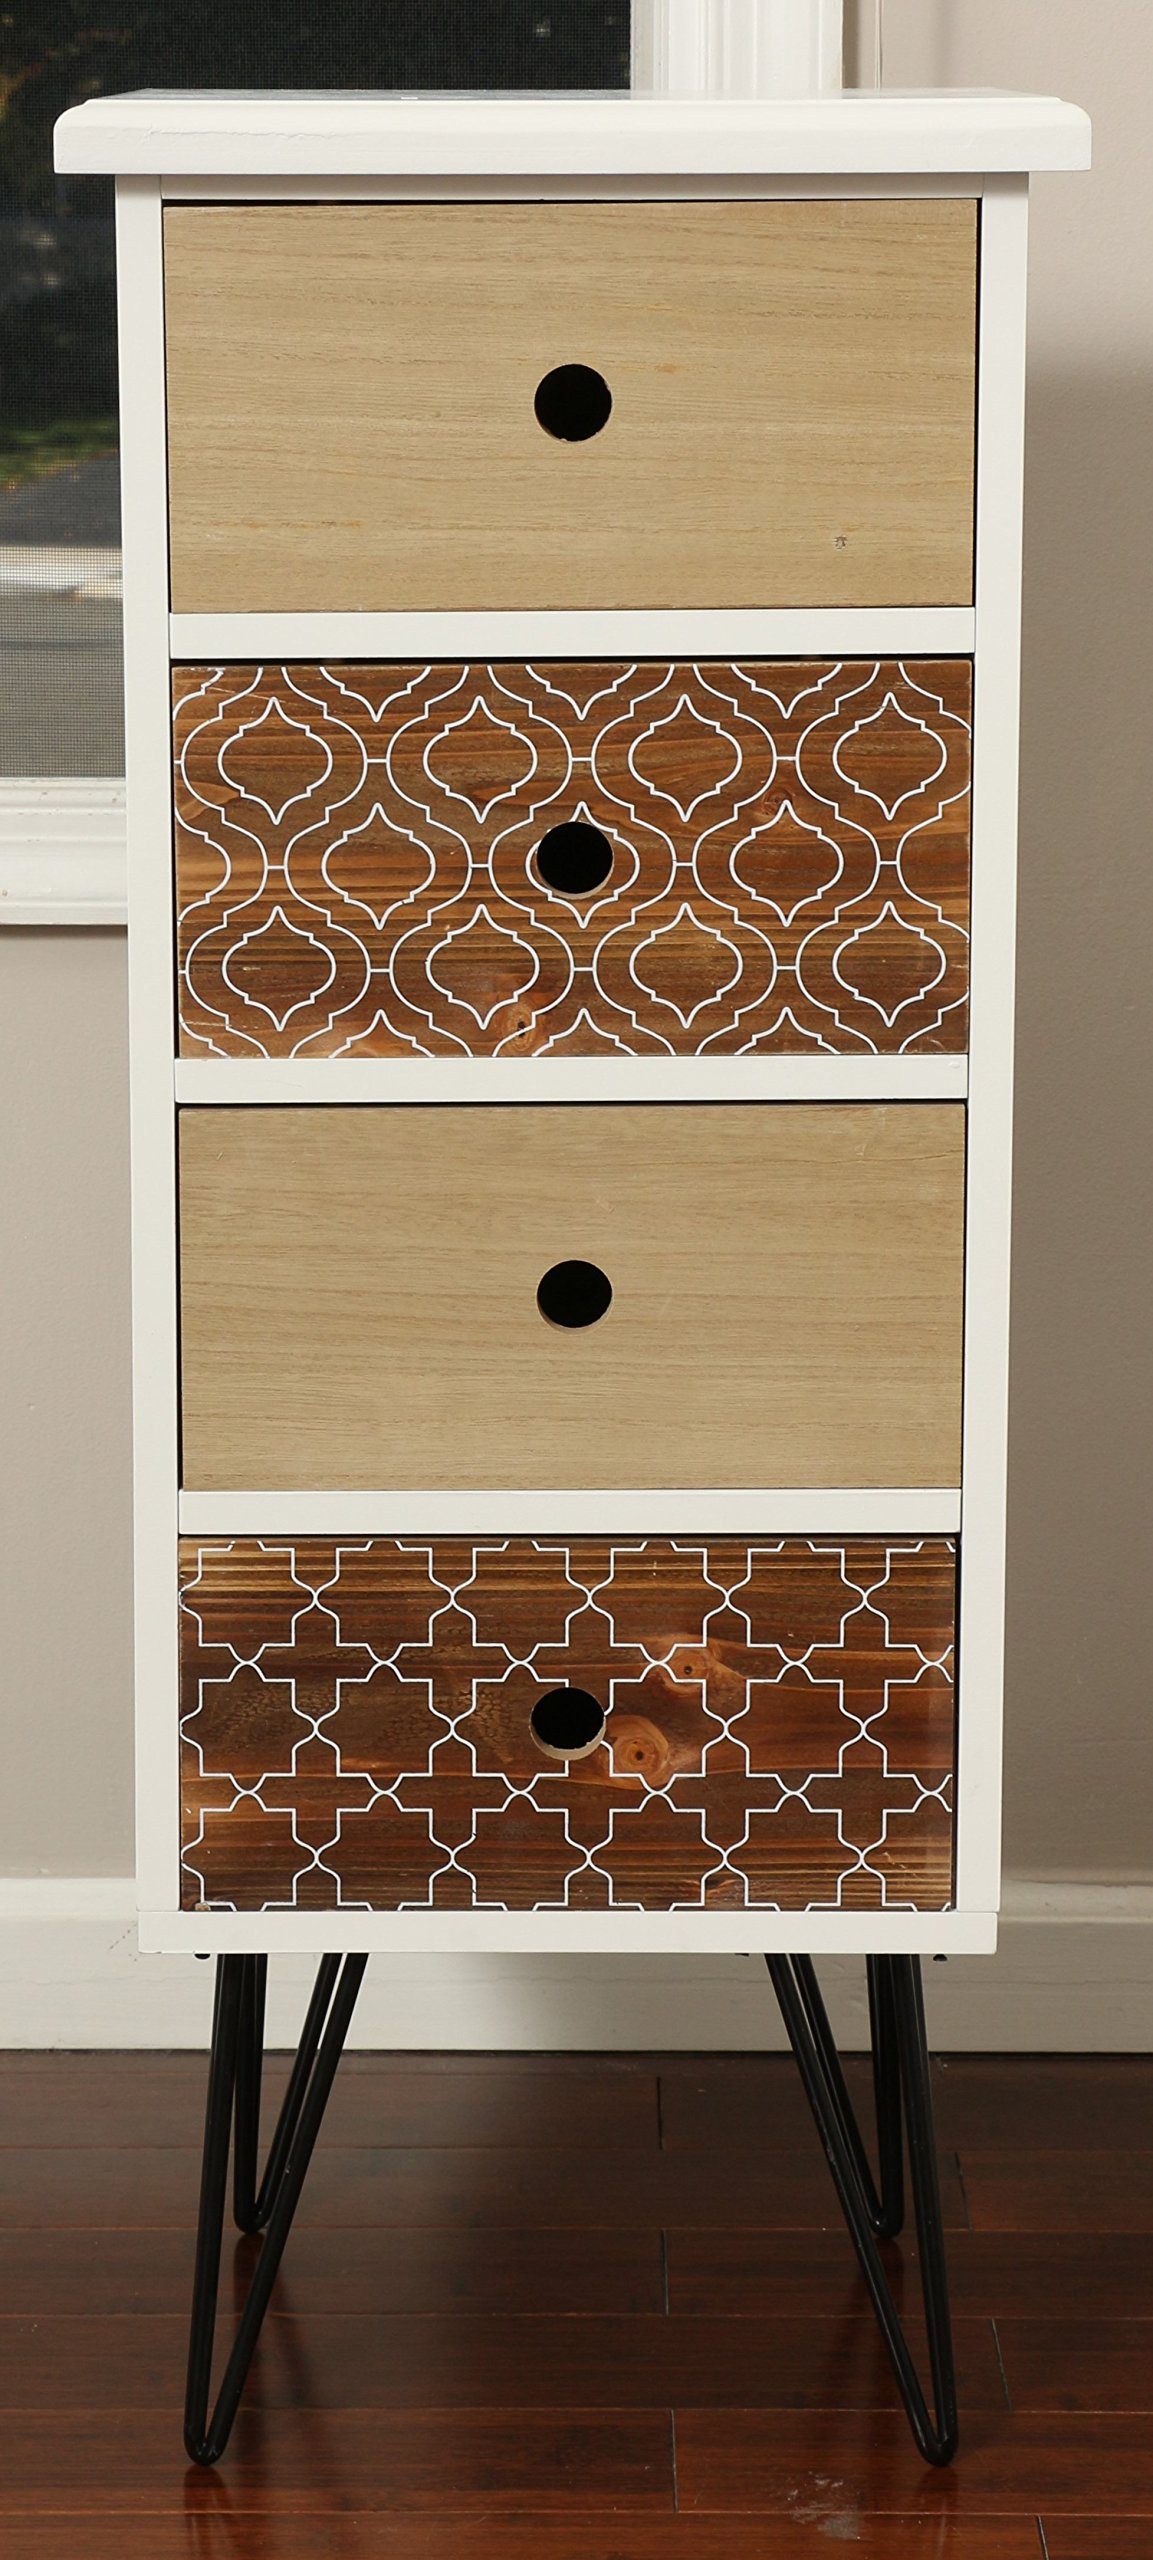 Oliver and Smith - Patchwork Collection - Wooden 4 Drawer Chest - Patchwork Reclaimed Style - Made in USA - Small Chest - 13.5'' W x 12'' D x 33'' H - 16208